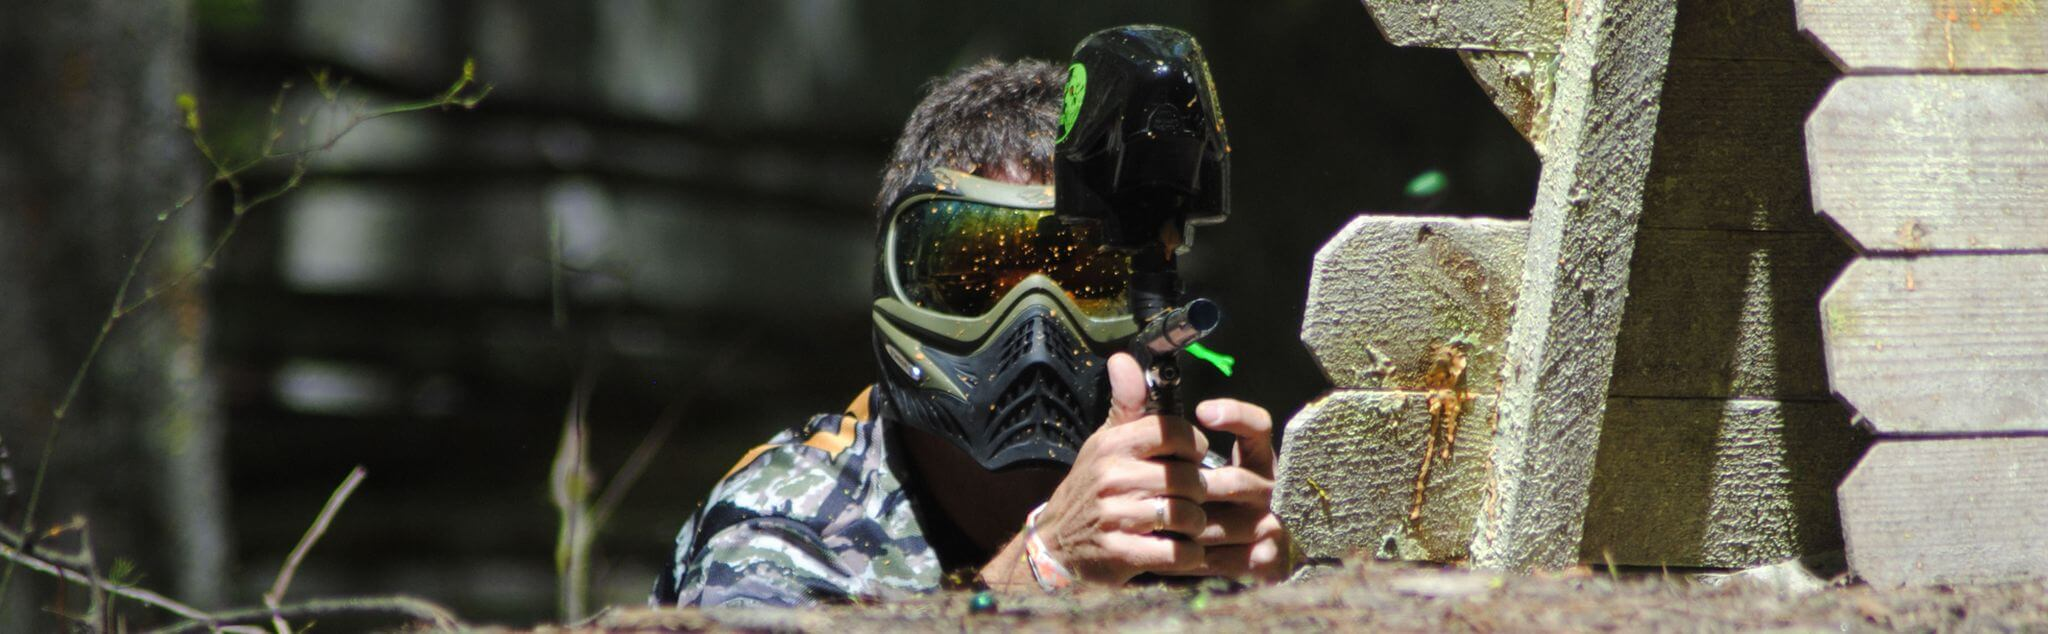 Paintball a Vezzano